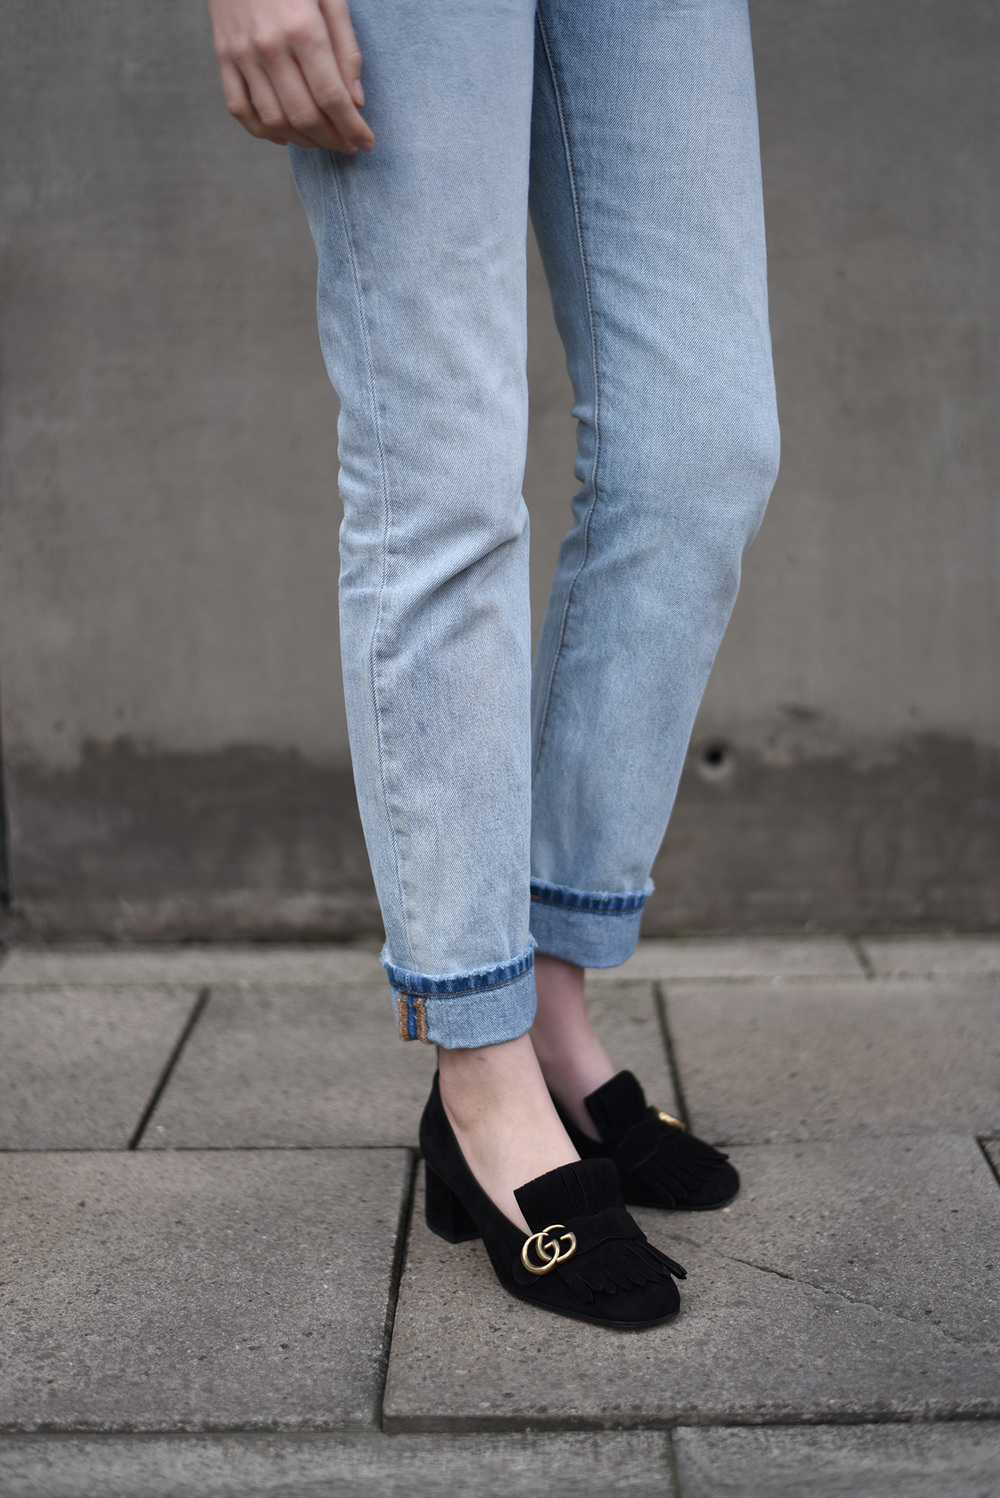 ae7060924e7 Gucci Suede Mid Heel Pump — SHOT FROM THE STREET